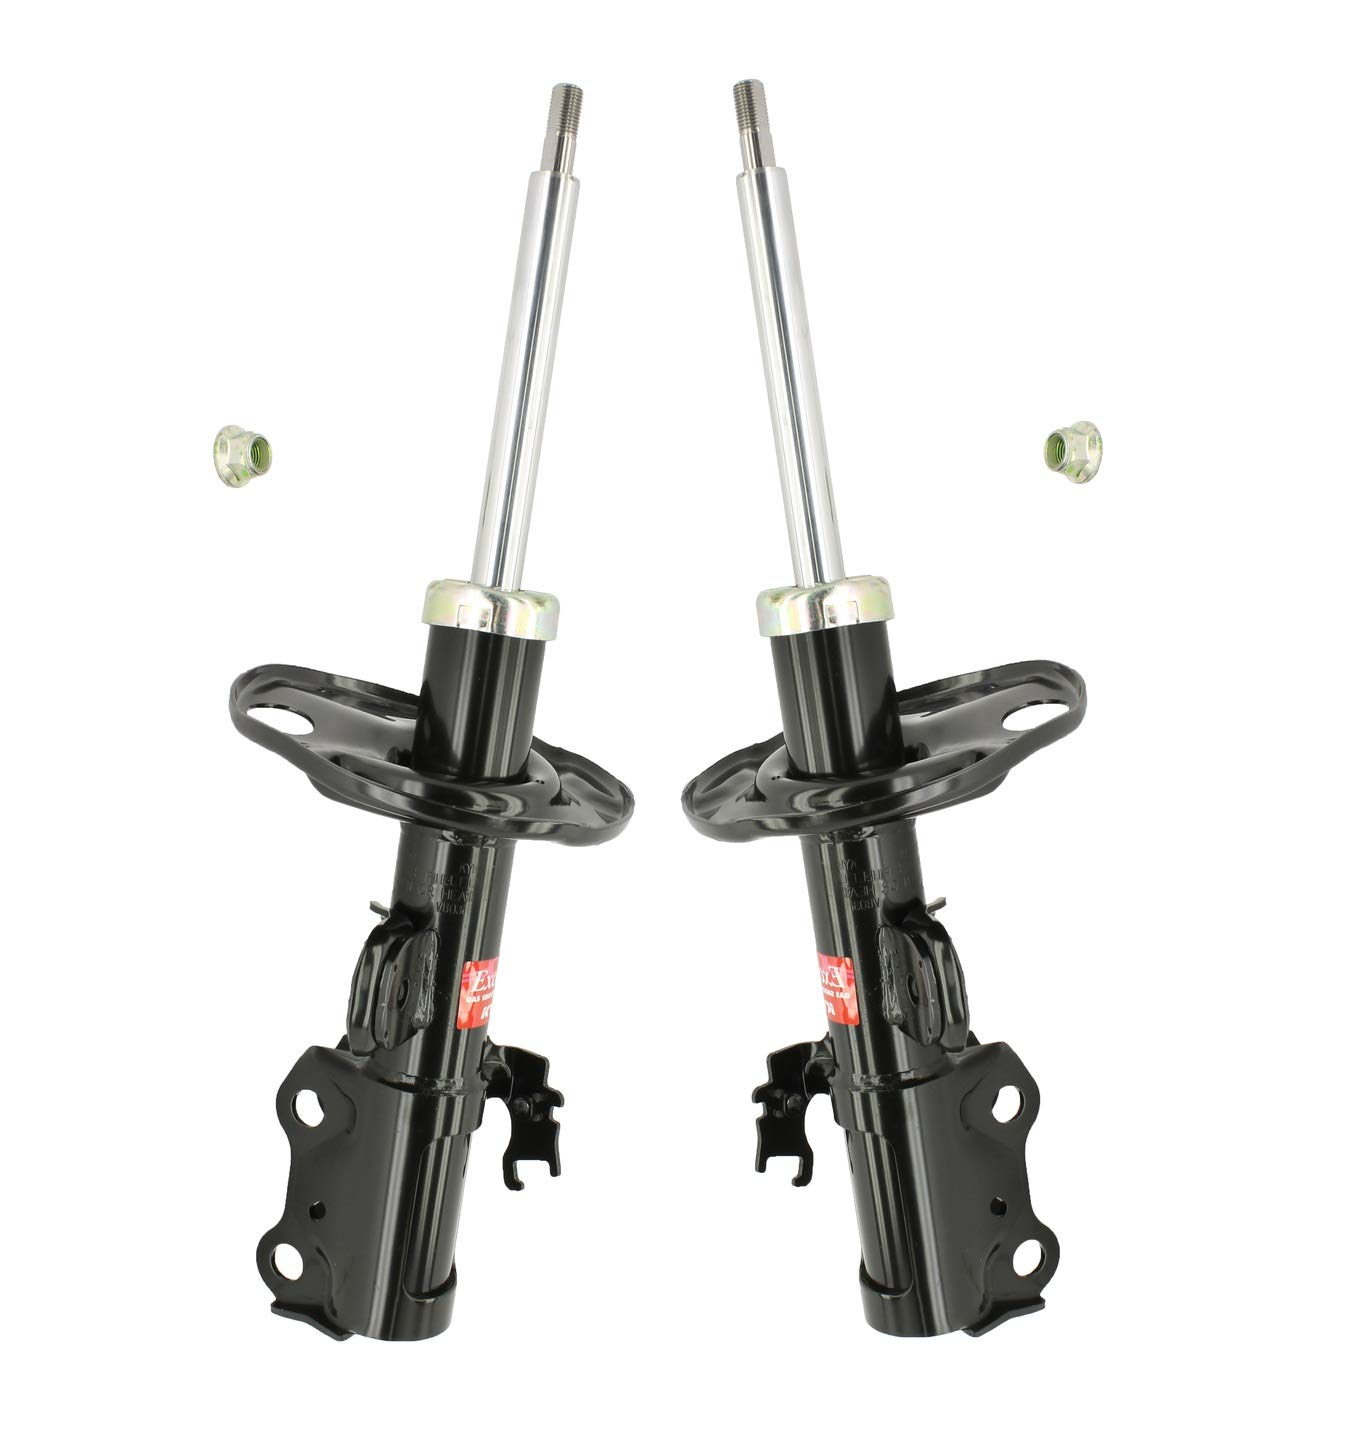 Pair Set of Front Left and Right KYB Excel-G Suspension Struts For Scion xB 2008-2015